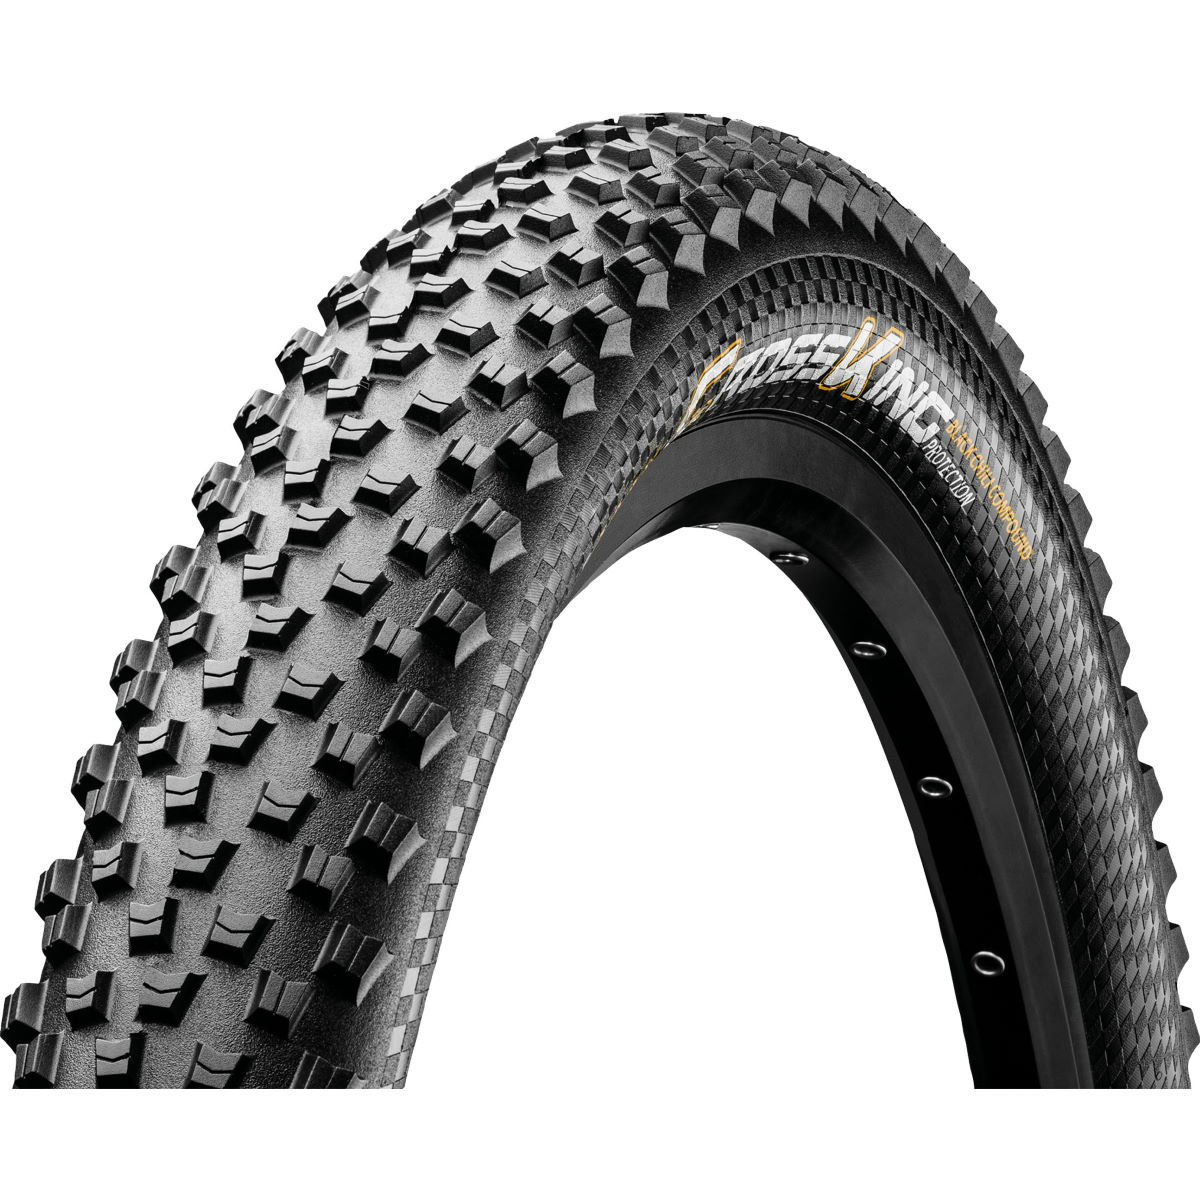 Continental Continental Cross King Protection Folding MTB Tyre   Tyres